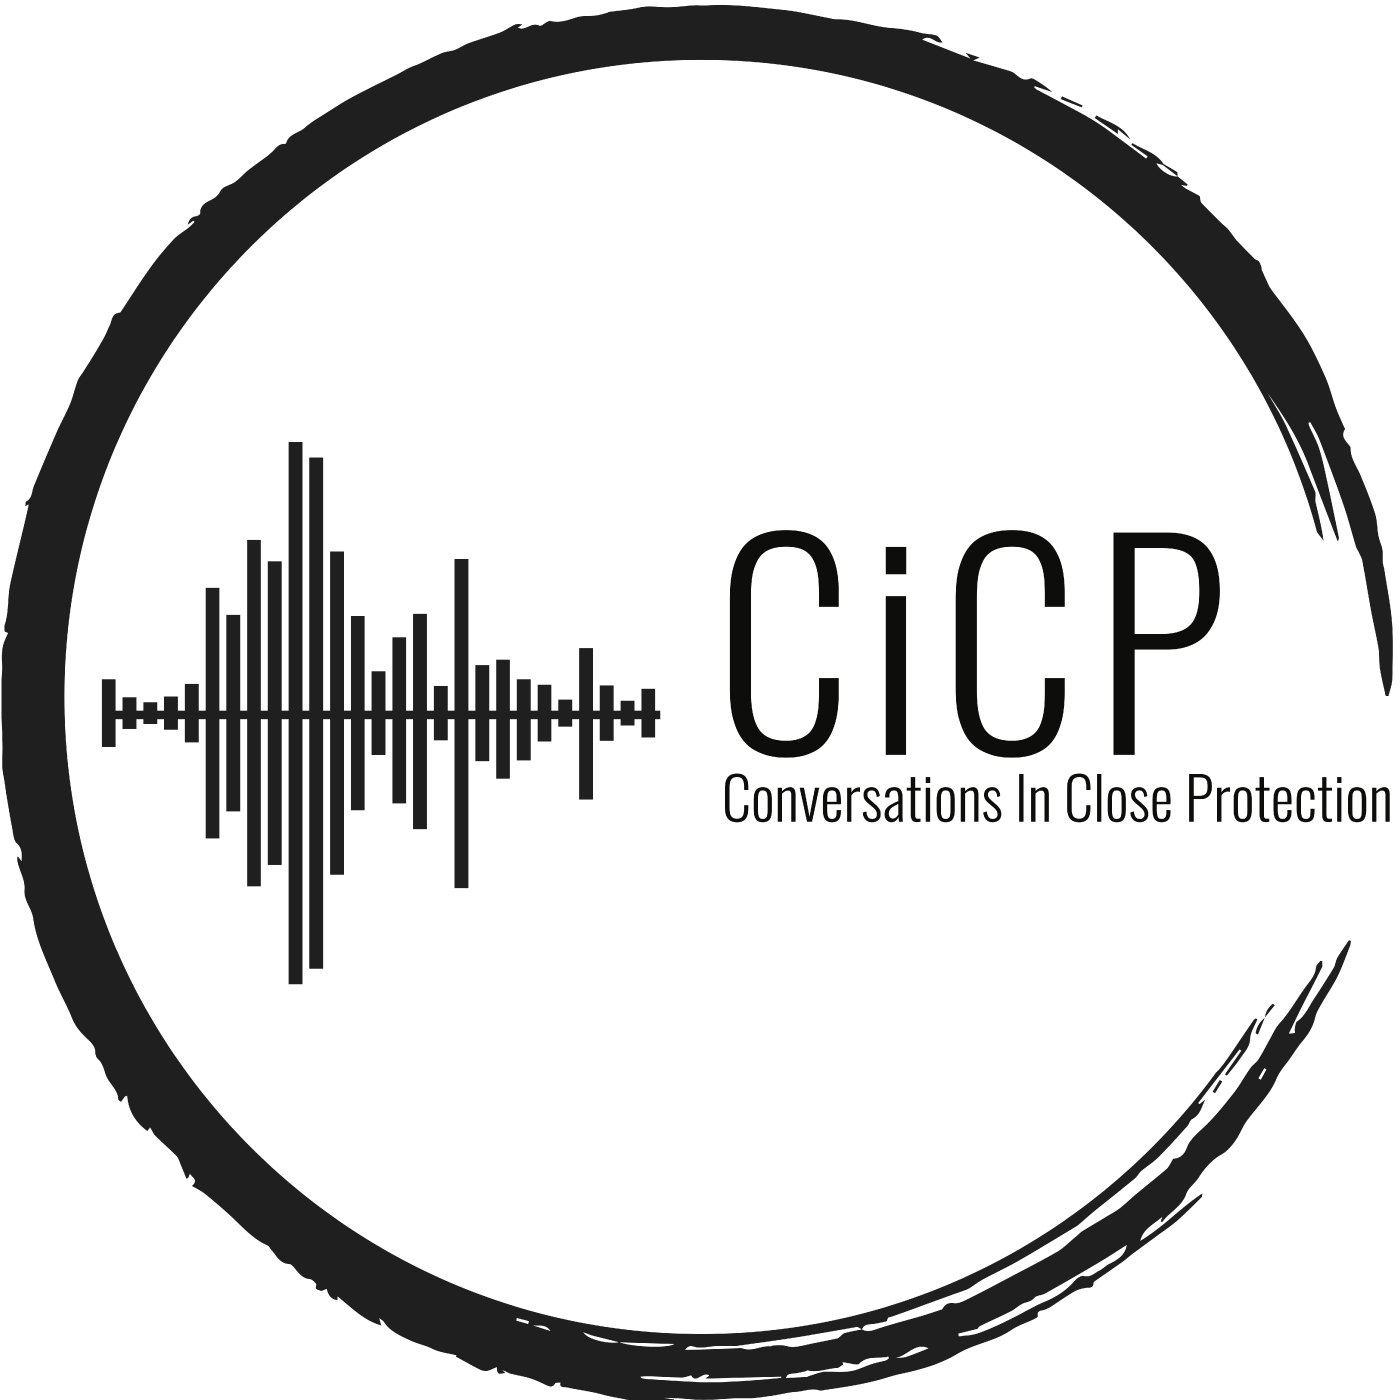 Close Protection Industry Shop Talk: Chuck and Chris Discuss Current Events